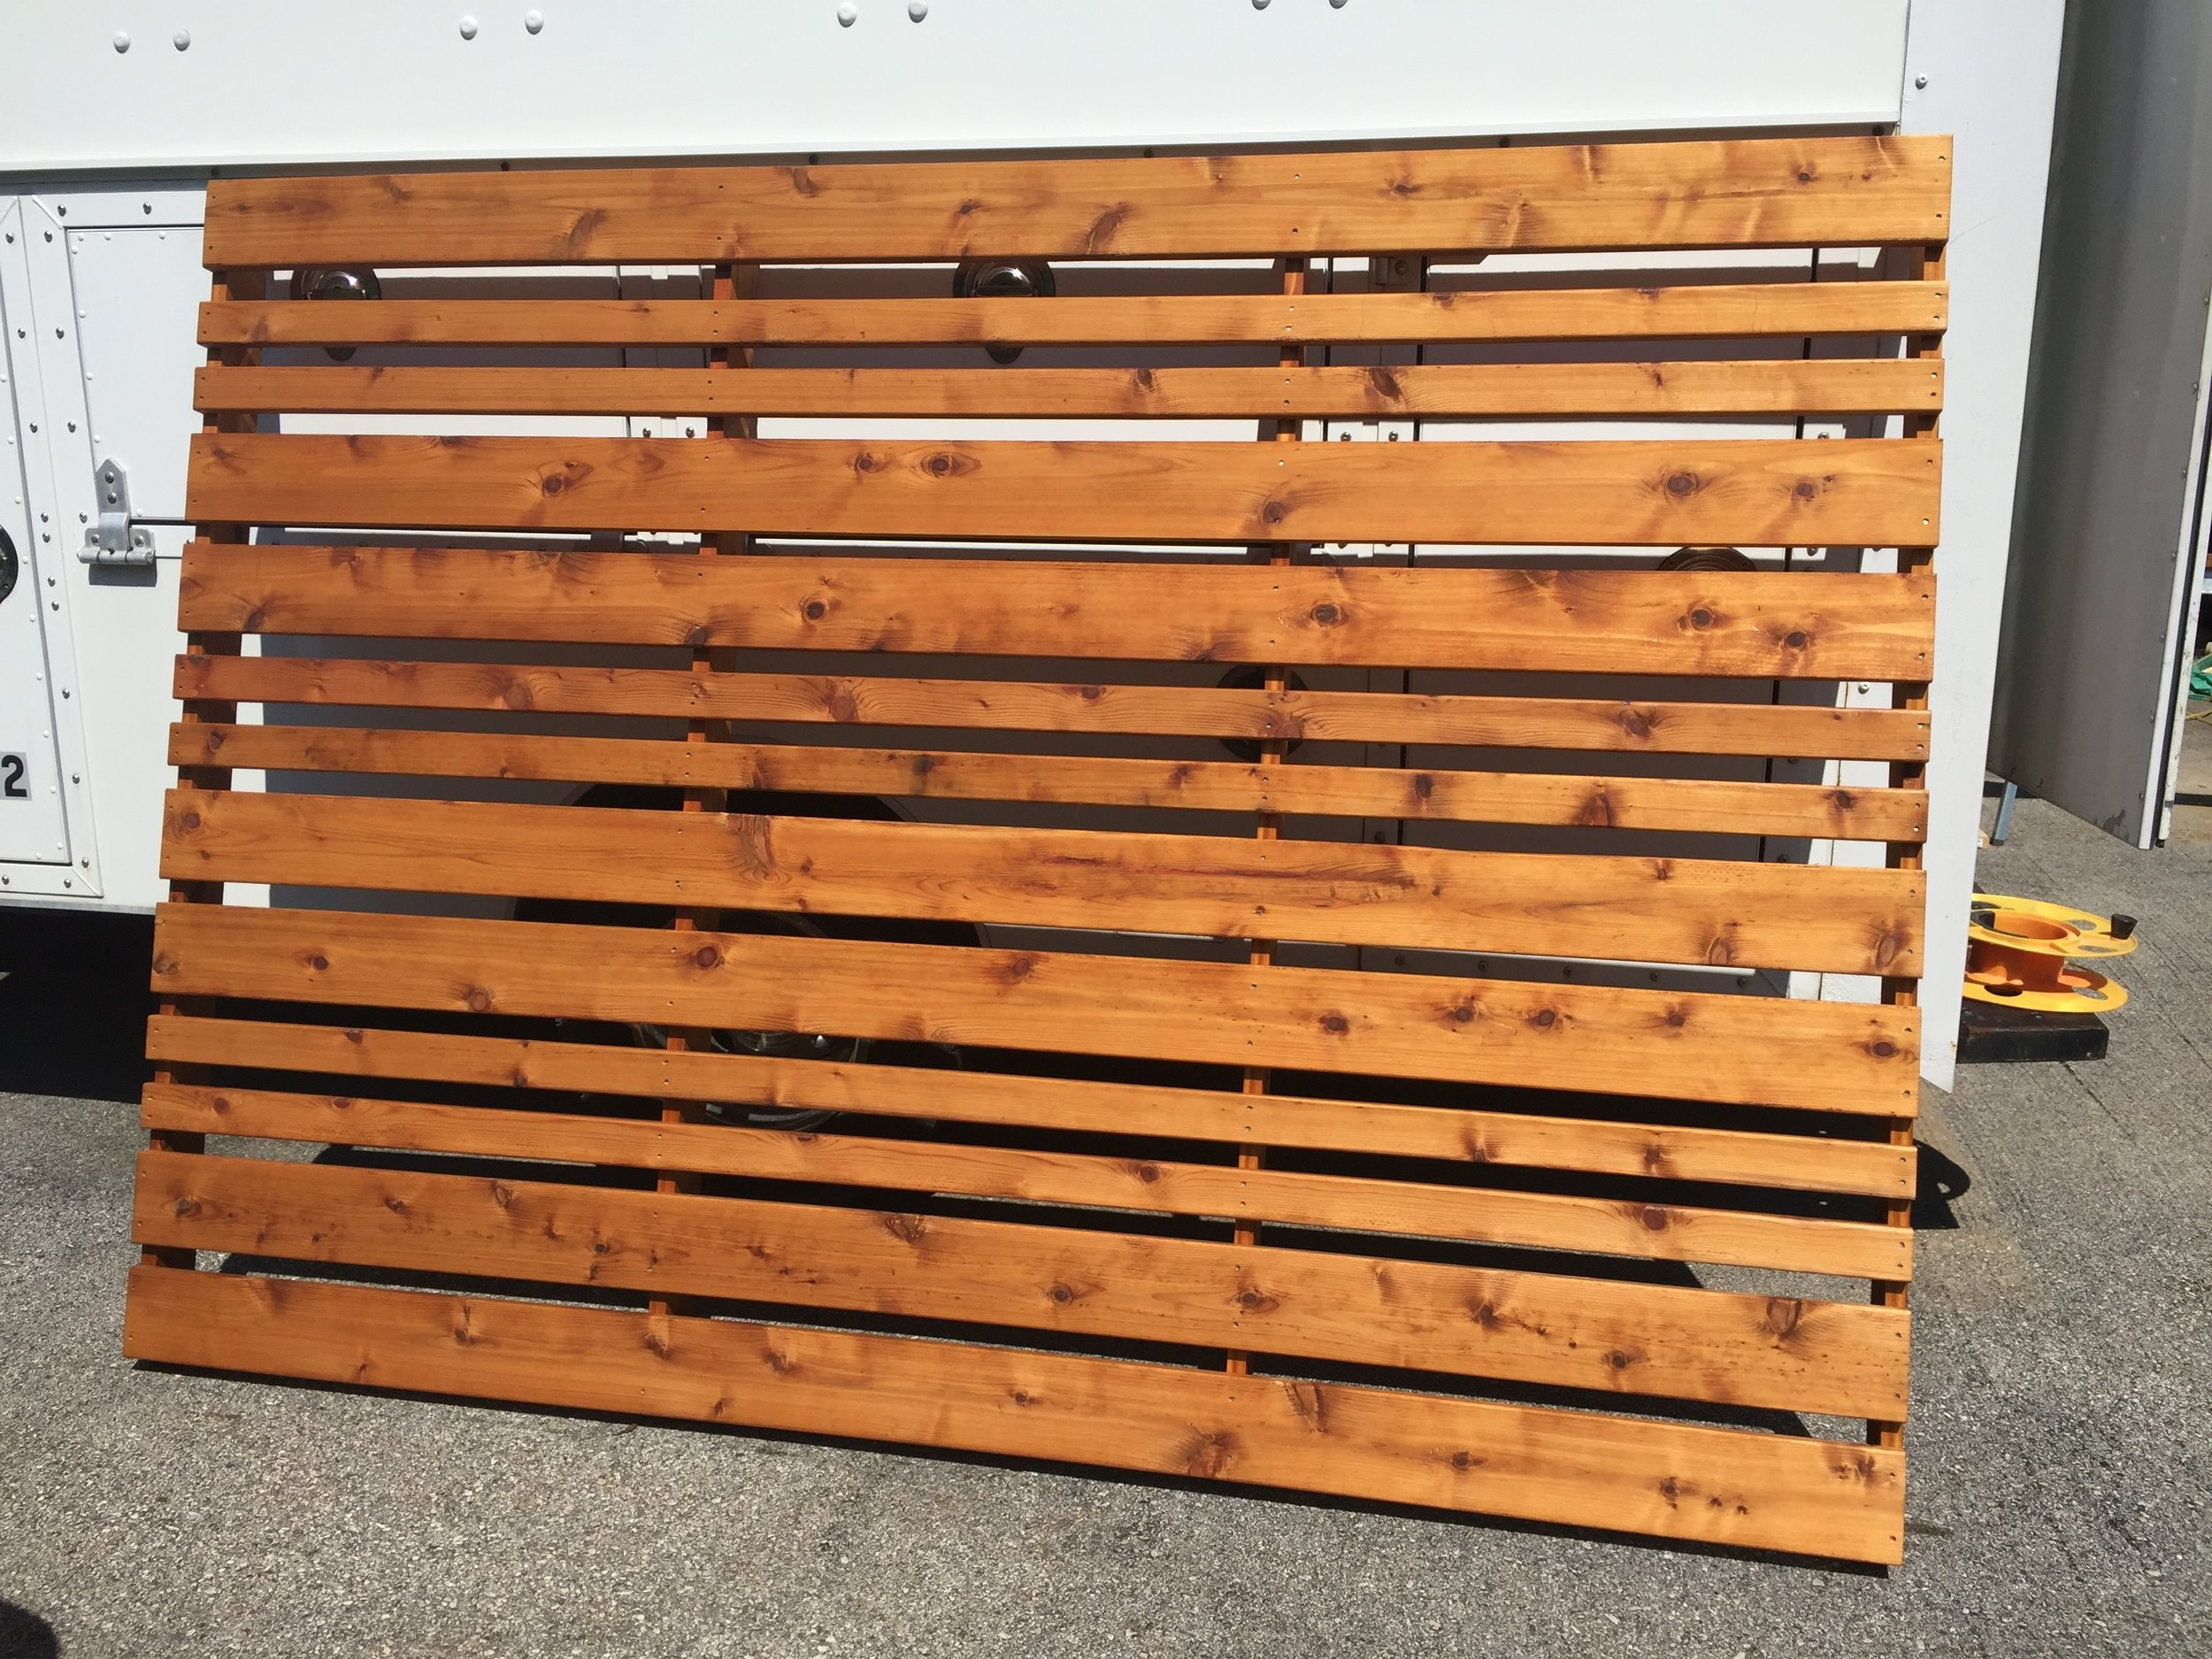 I made up a couple two-sided cedar fence panels using horizontal slats secured to central stiles.